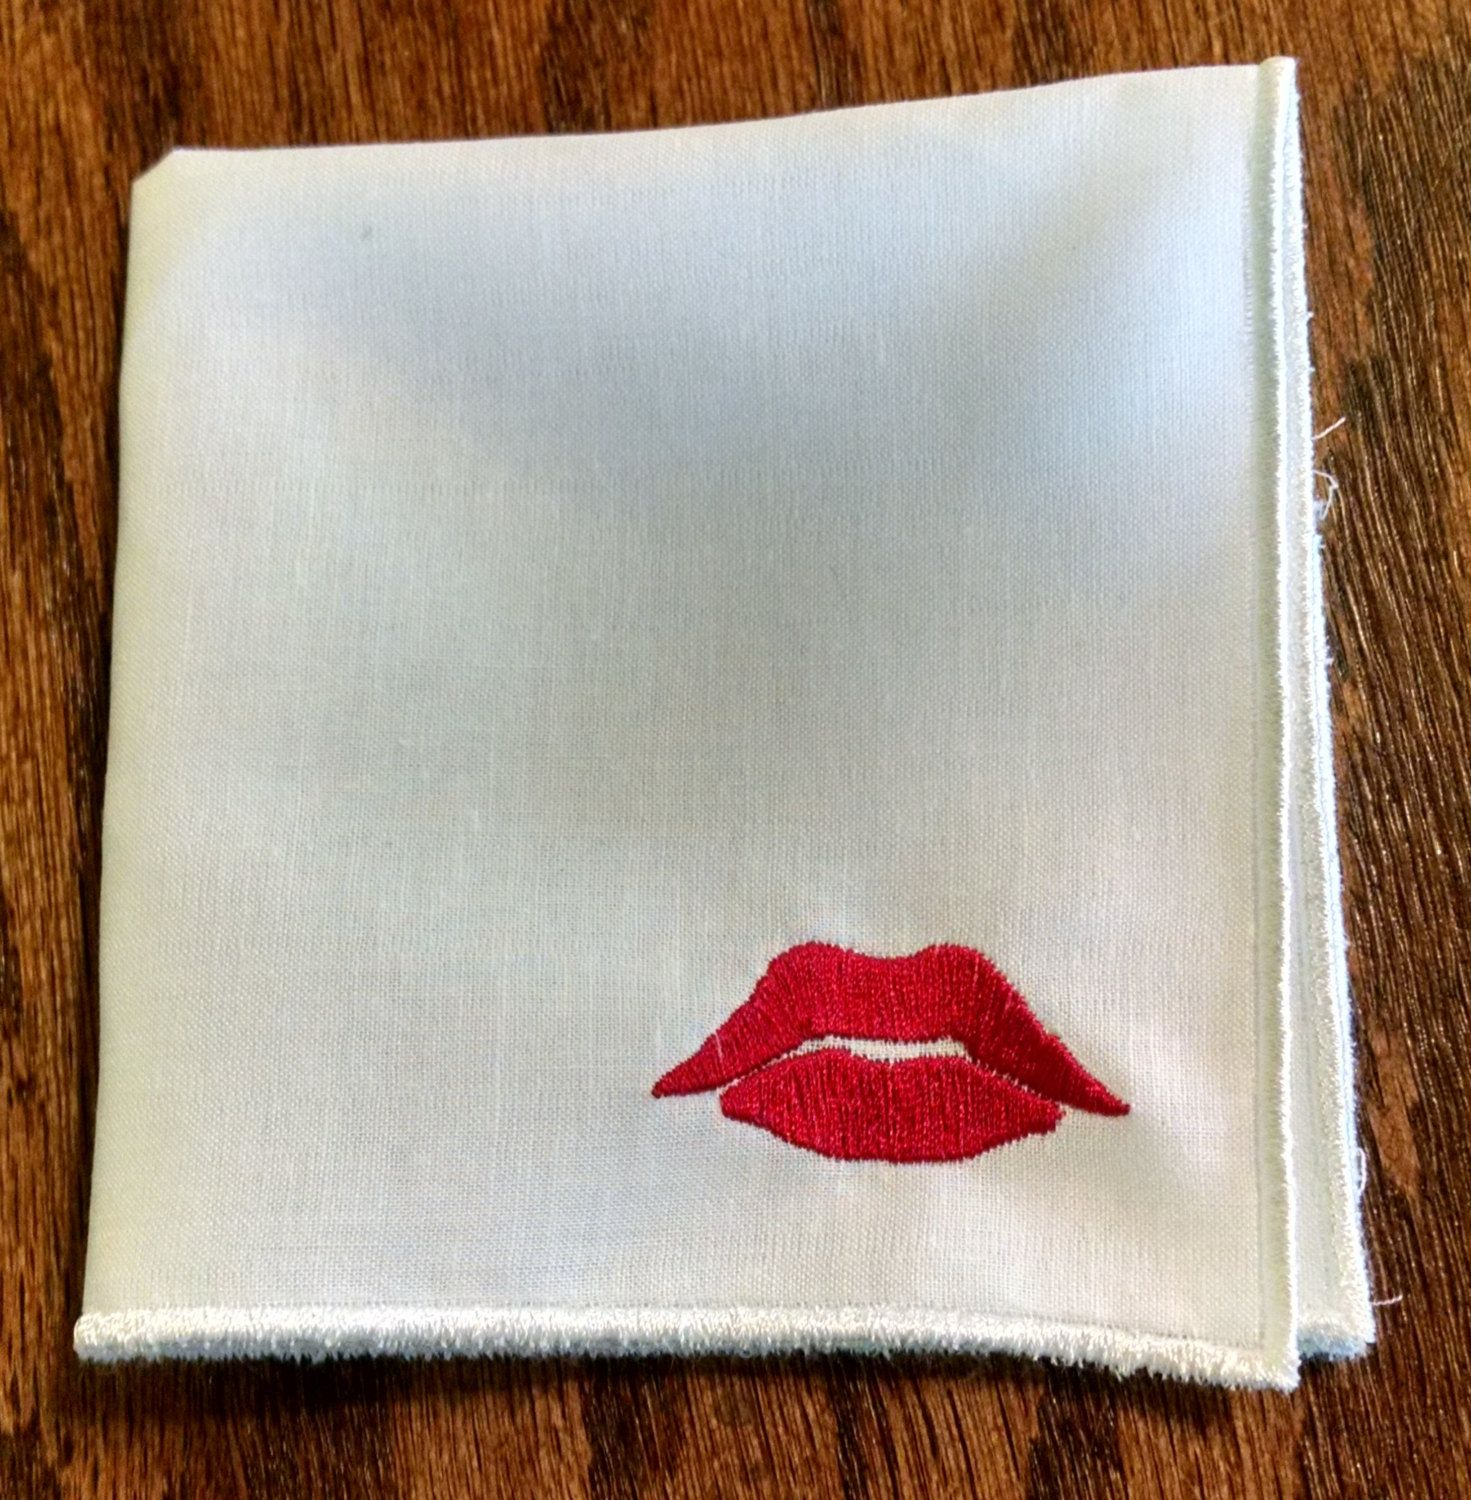 Lucious Red Lips Embroidered Handkerchief Red Lips Etsy Satin